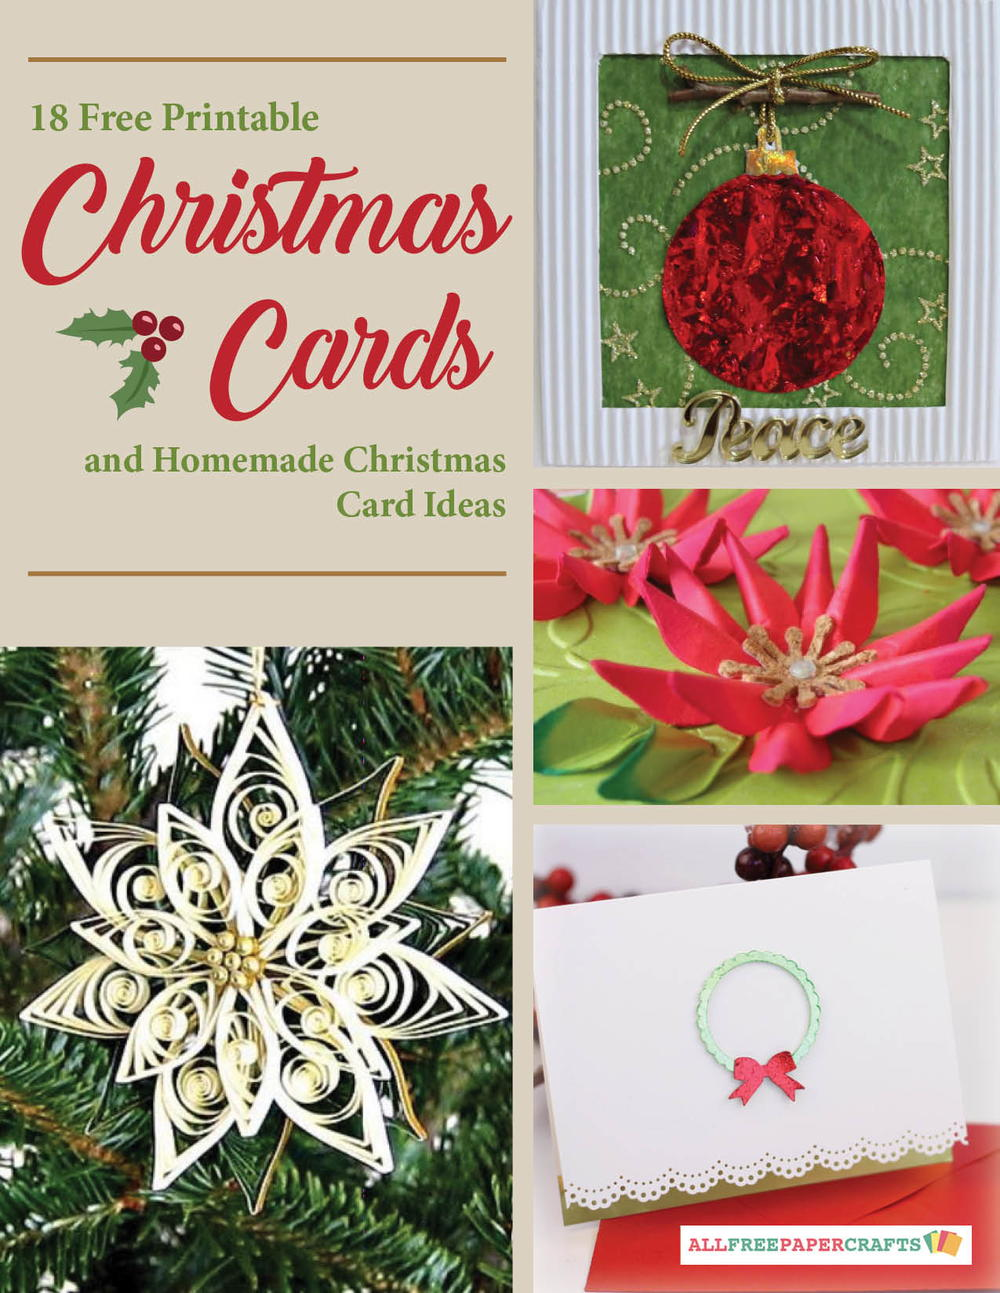 18 Free Printable Christmas Cards and Homemade Christmas ...